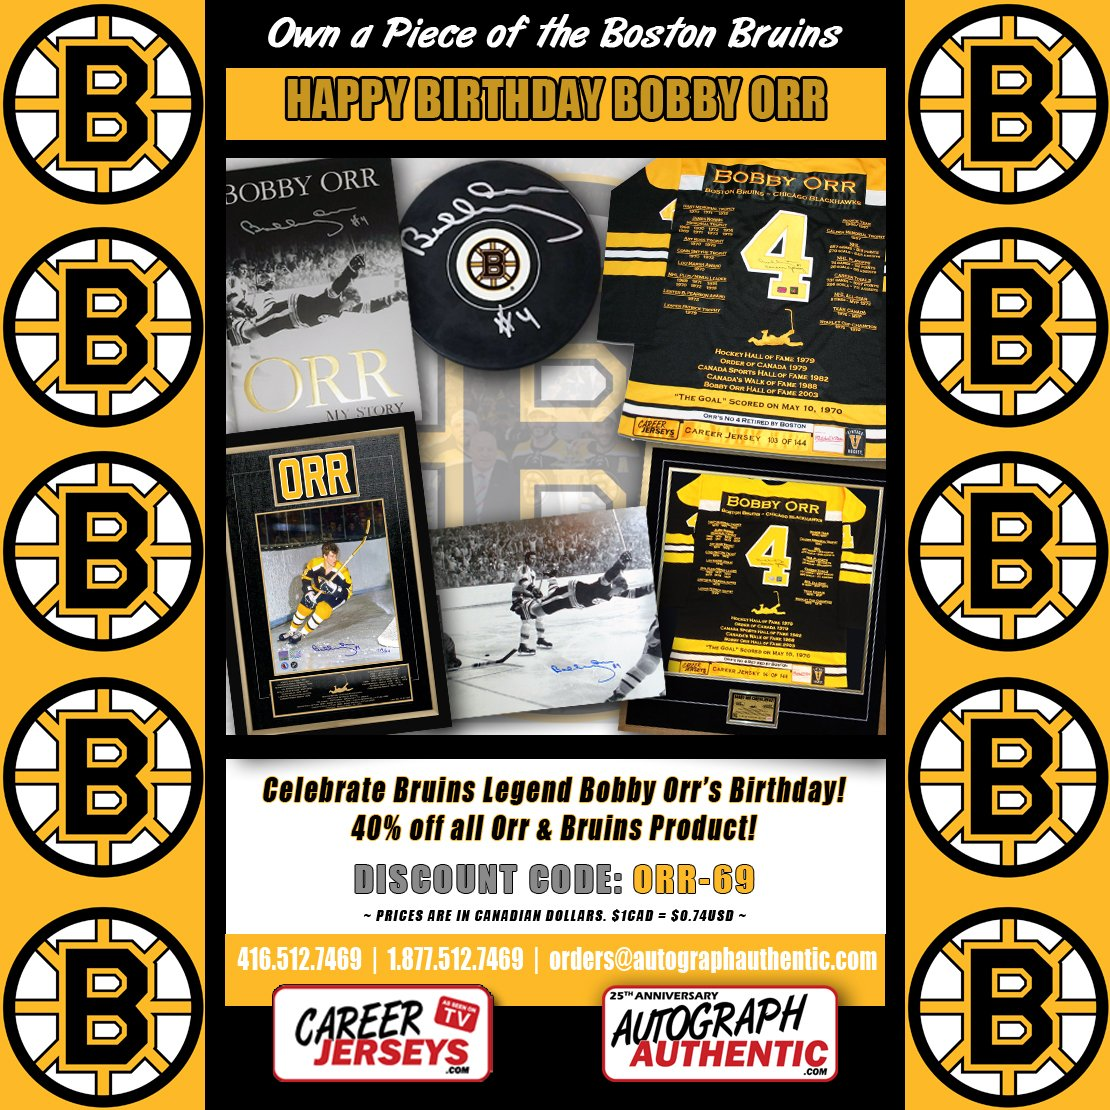 **HAPPY BIRTHDAY BOBBY ORR** Happy Birthday to a Hockey Legend! DISCOUNT CODE: ORR-69